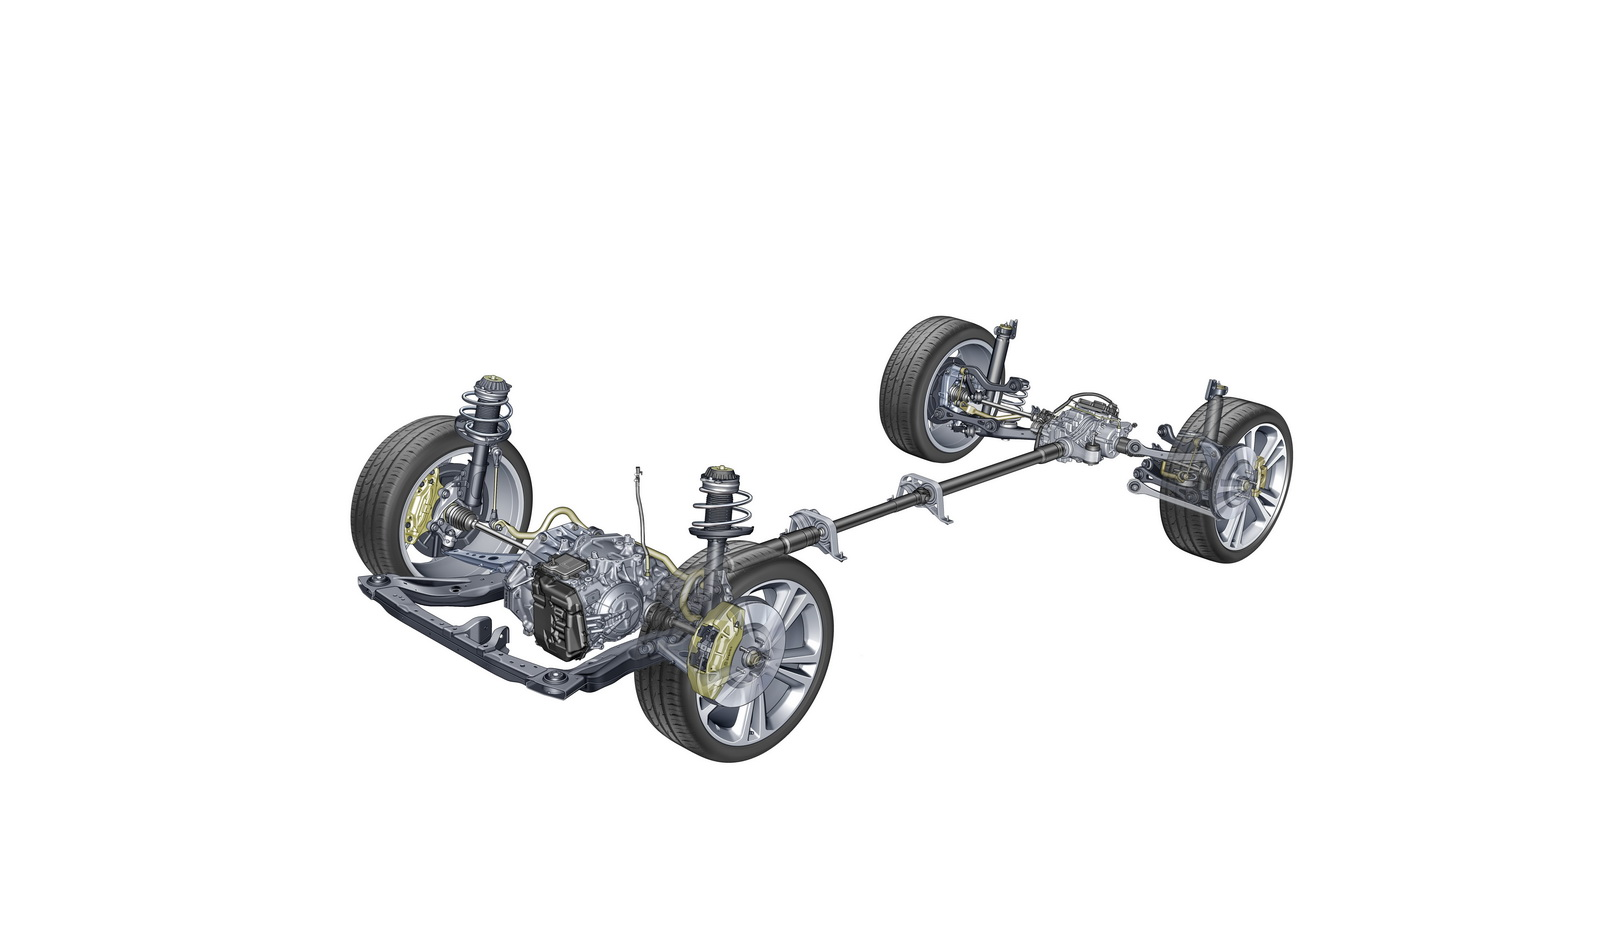 The Insignia's all-wheel drive system can apply torque to one or both of the rear wheels independently, enabling torque vectoring capability across the car's full performance range.